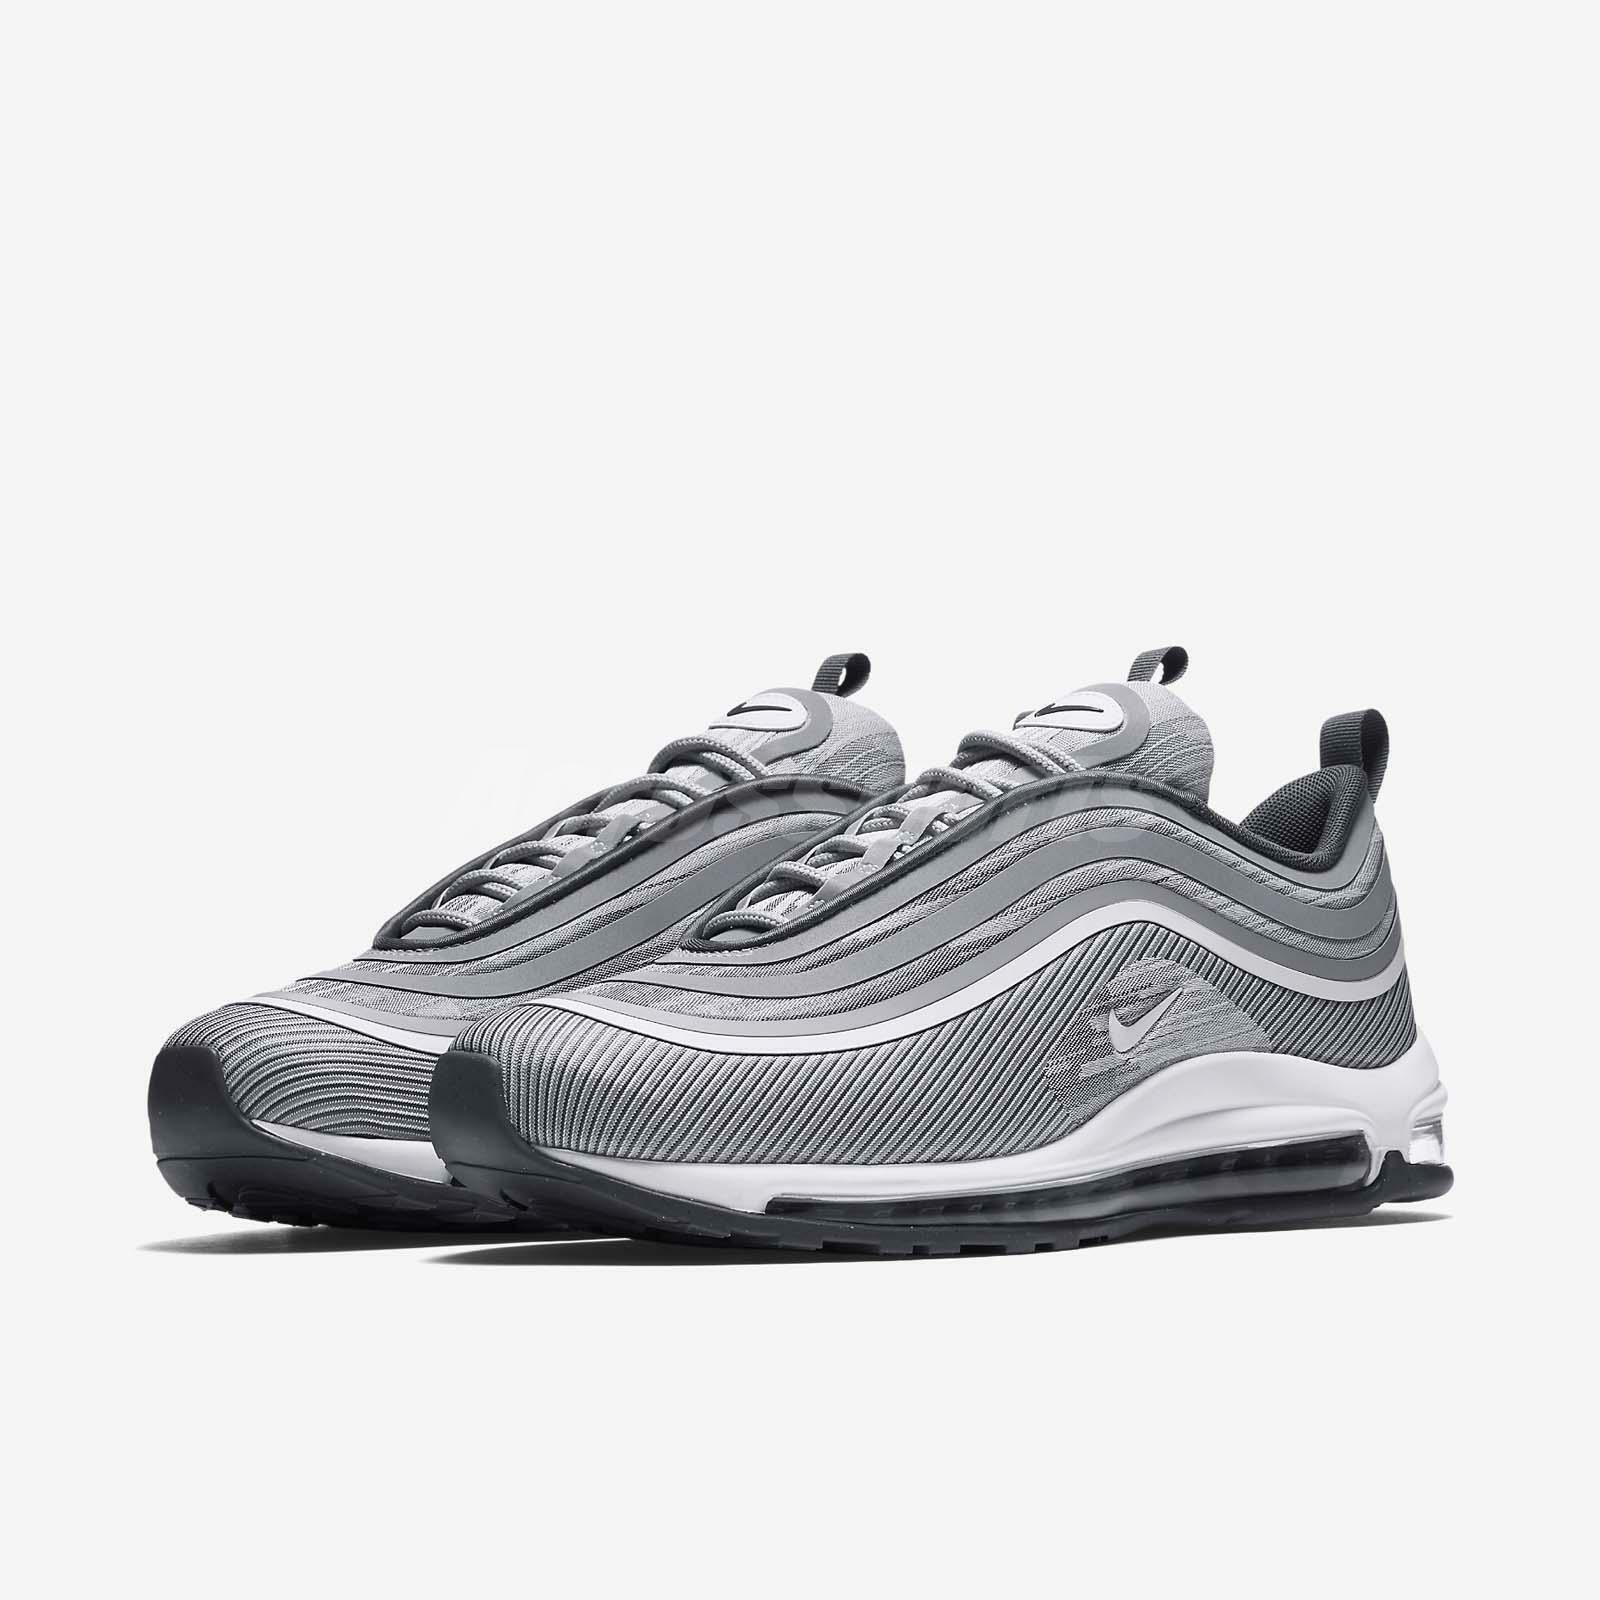 NIKE AIR MAX 97 UL '17 WOLF GREY-WHITE-DARK GREY SZ 8.5 [918356-007]